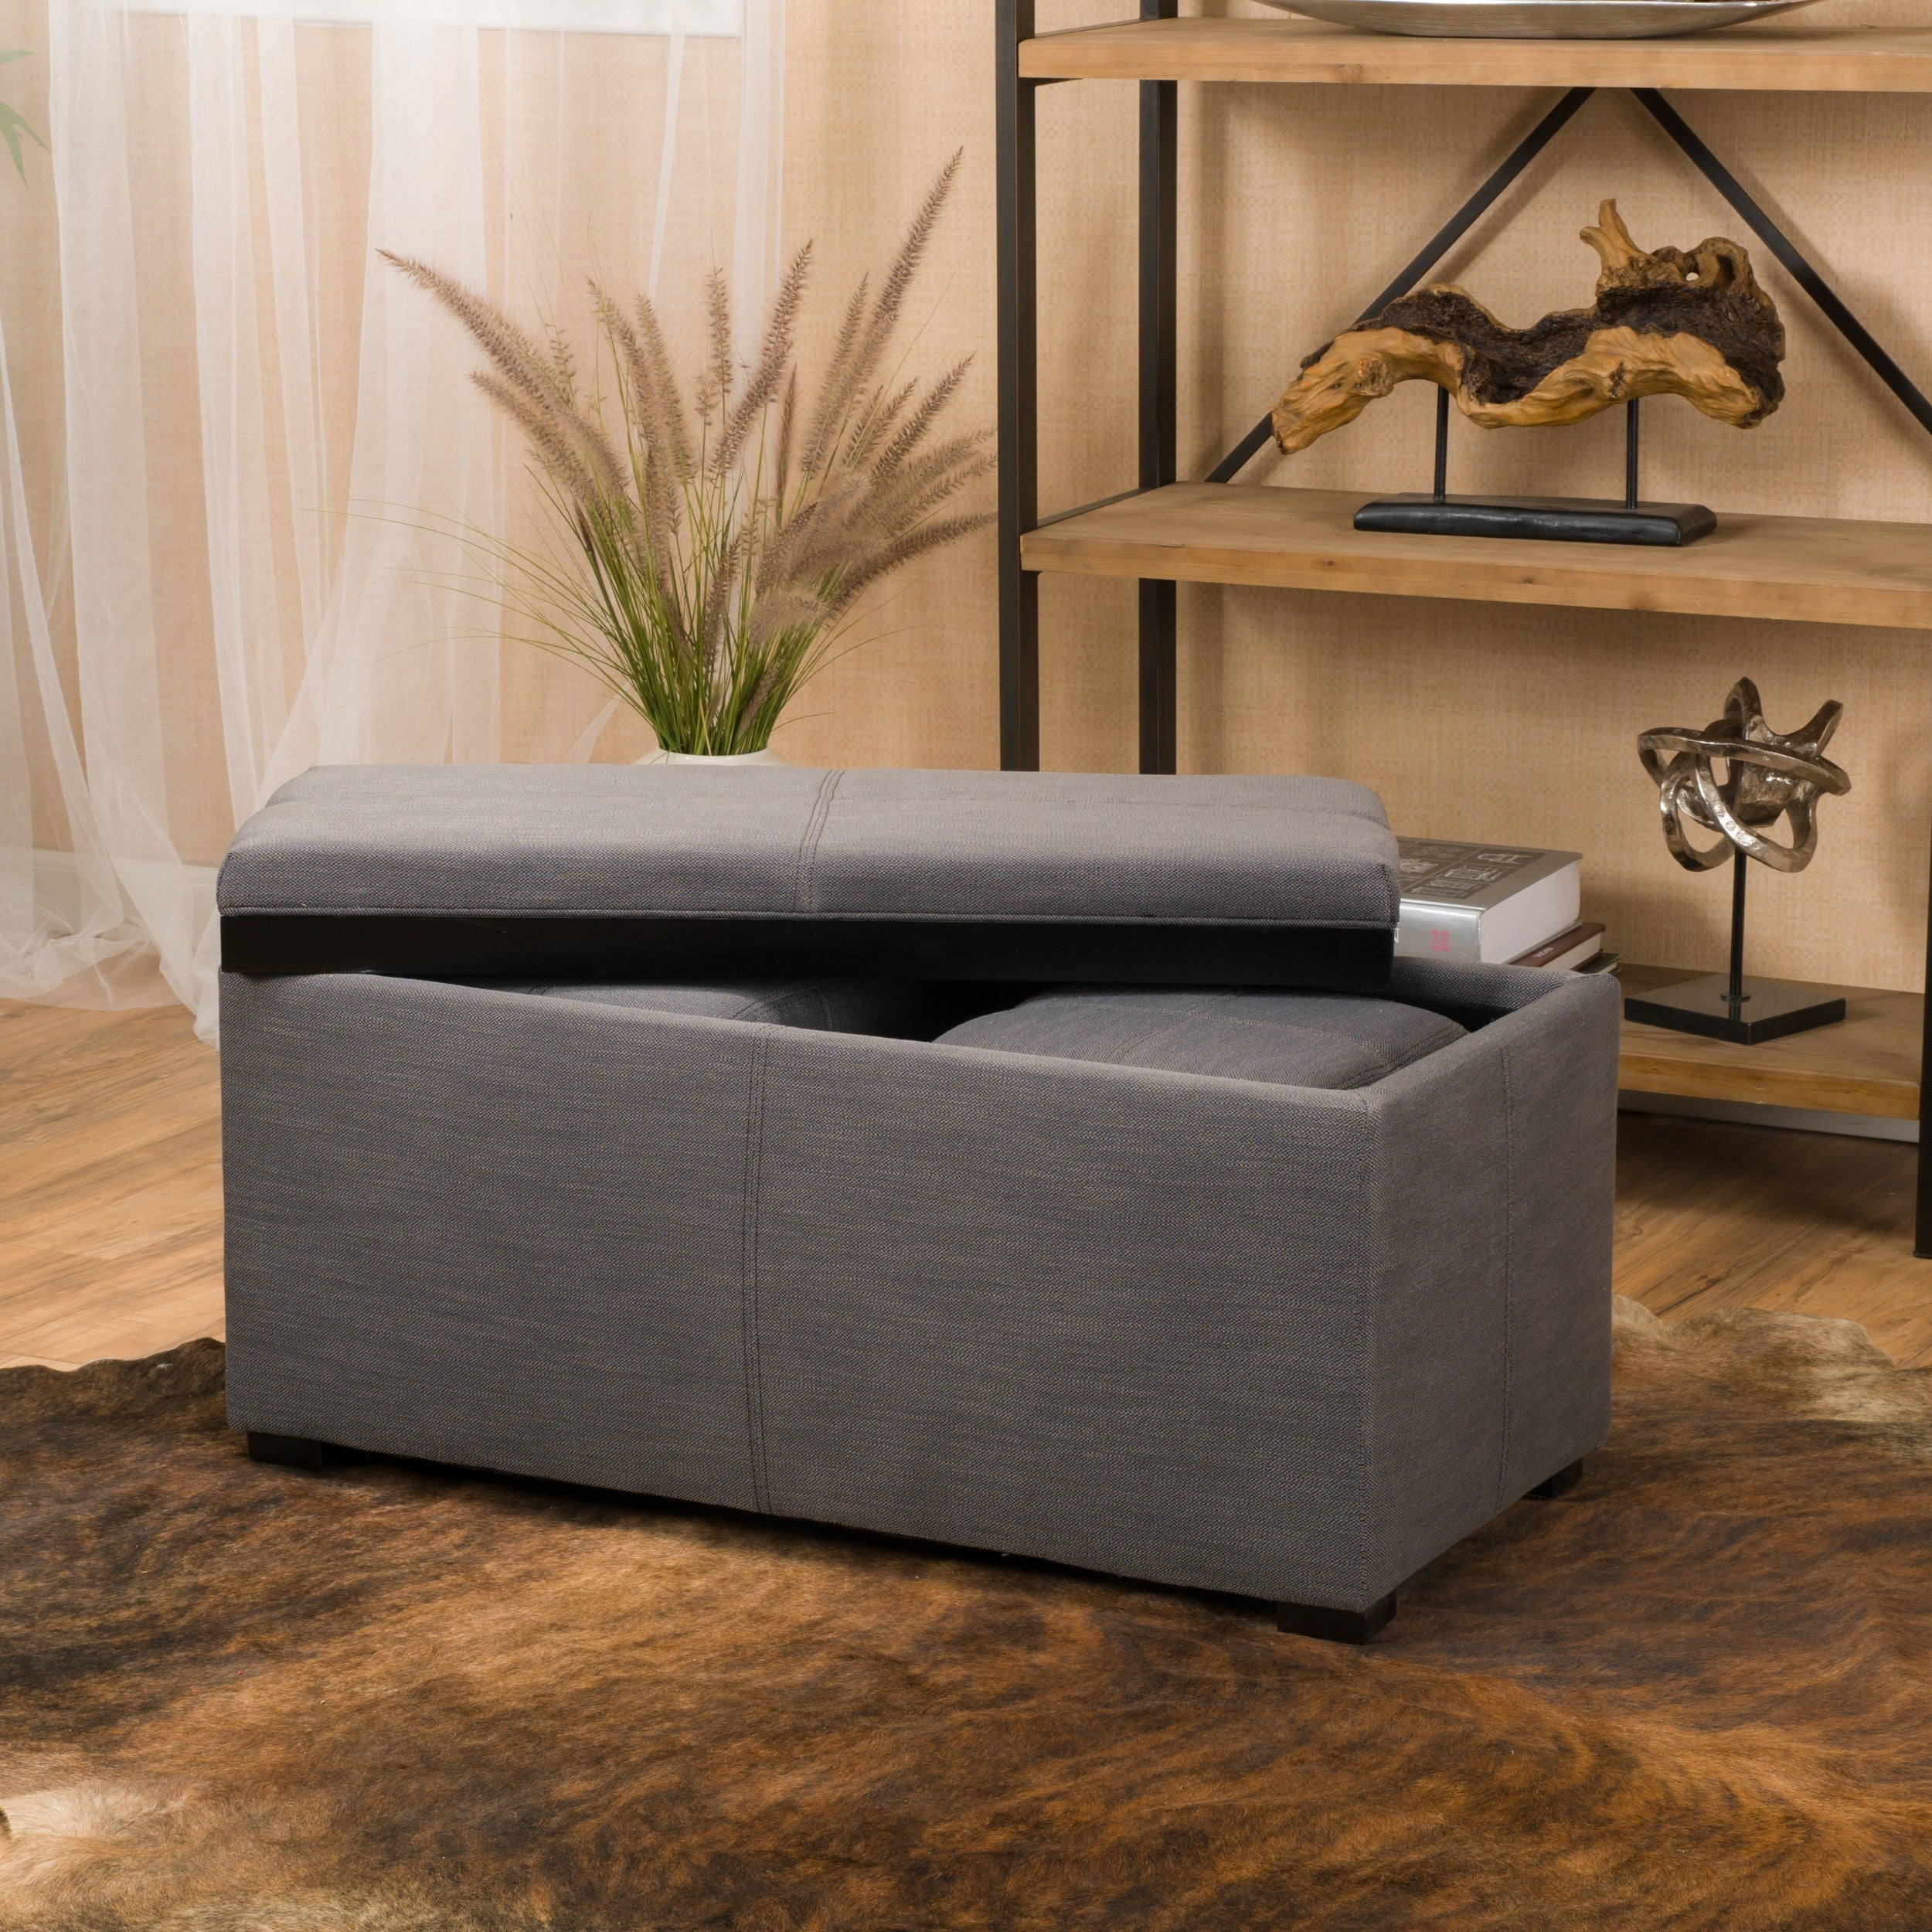 Marvelous Details About Drake 3 Piece Fabric Tray Top Nested Storage Ottoman Bench Grey Large Ncnpc Chair Design For Home Ncnpcorg